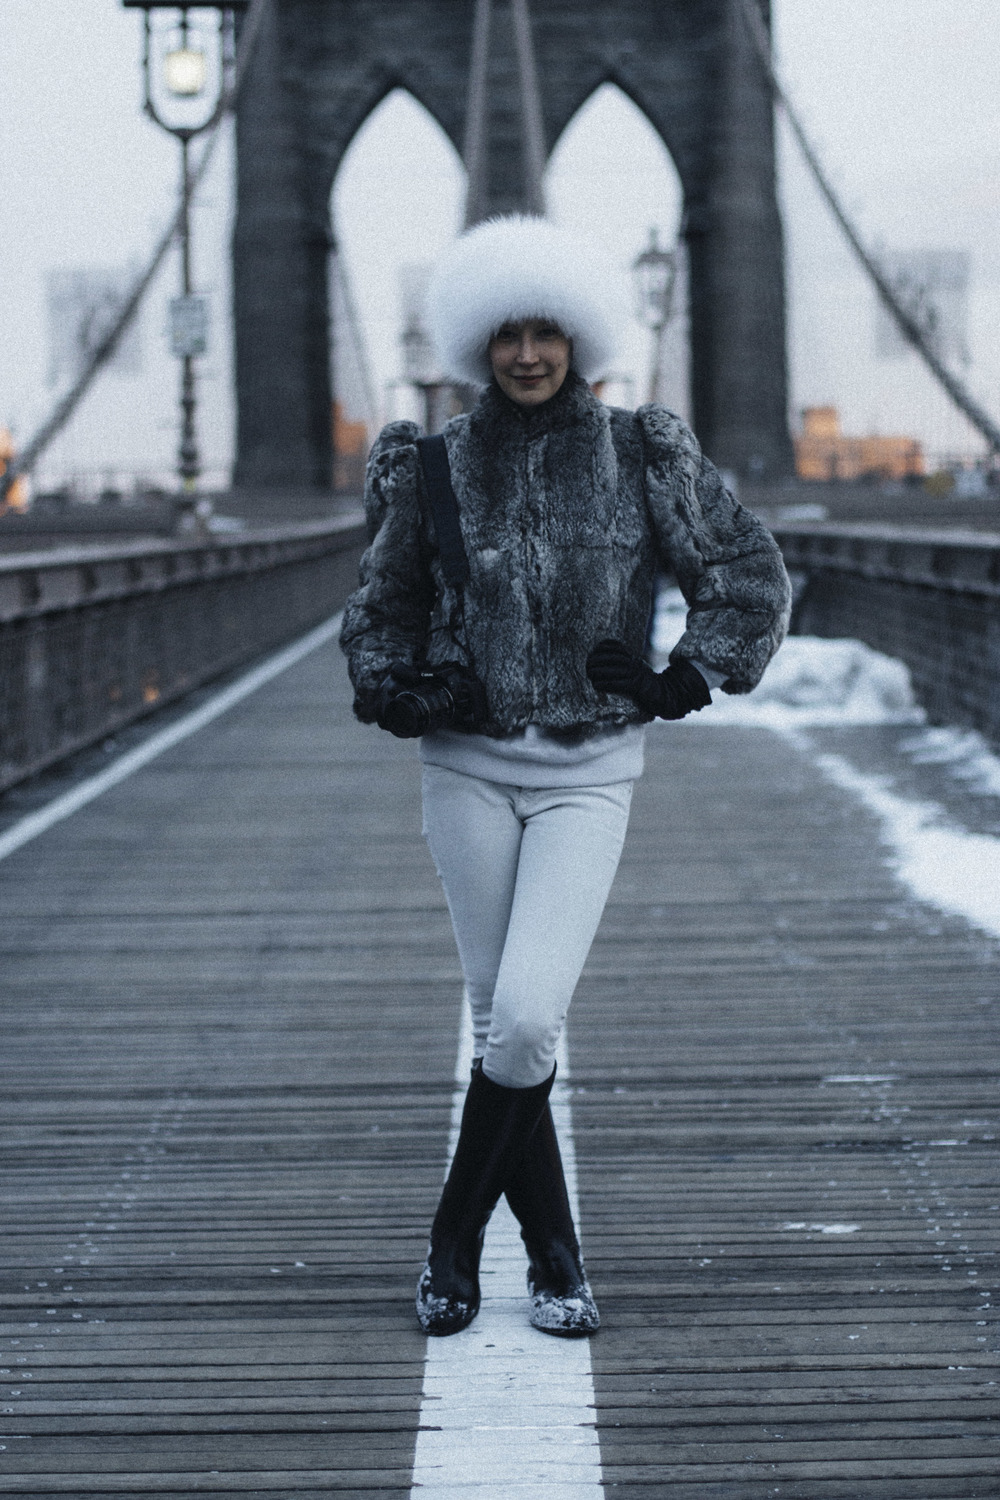 A WILL JR BK Bridge Lady in Fur Hat.jpg